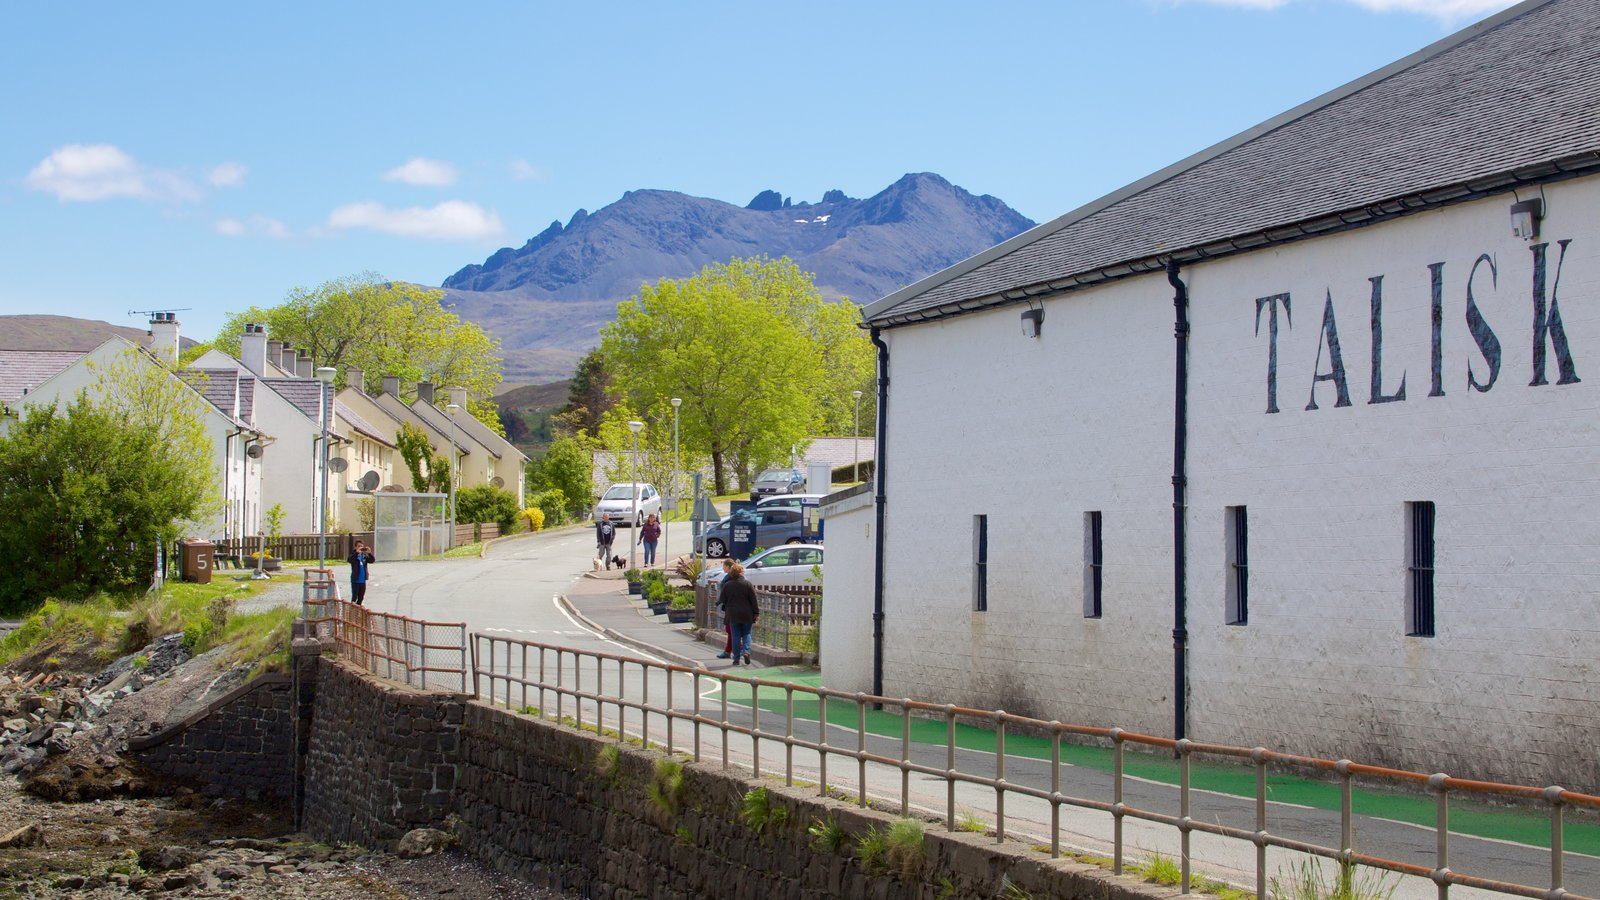 Talisker Distillery which includes street scenes, heritage elements and mountains